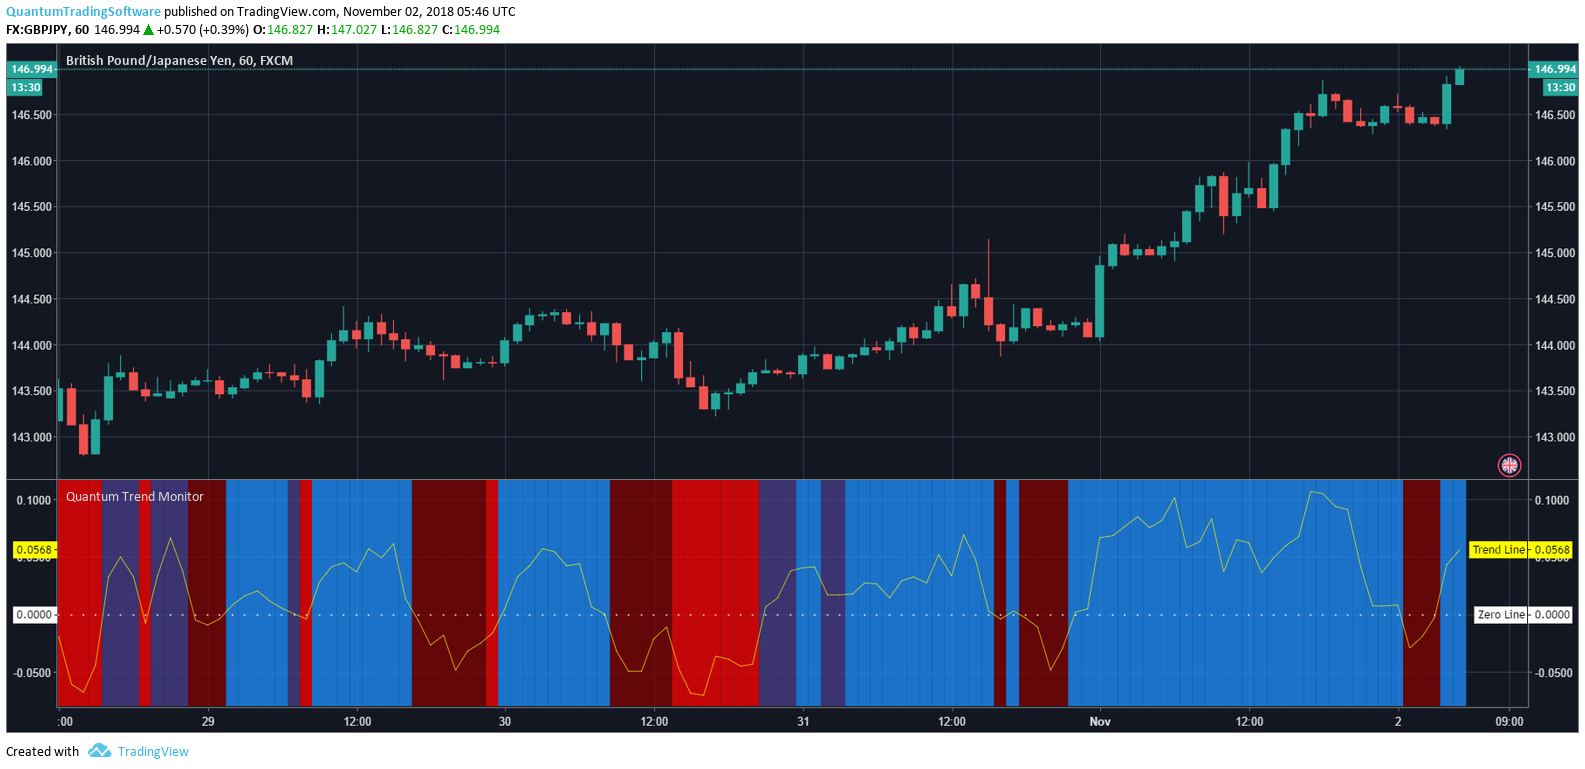 Configuring the Trend Monitor Indicator for TradingView